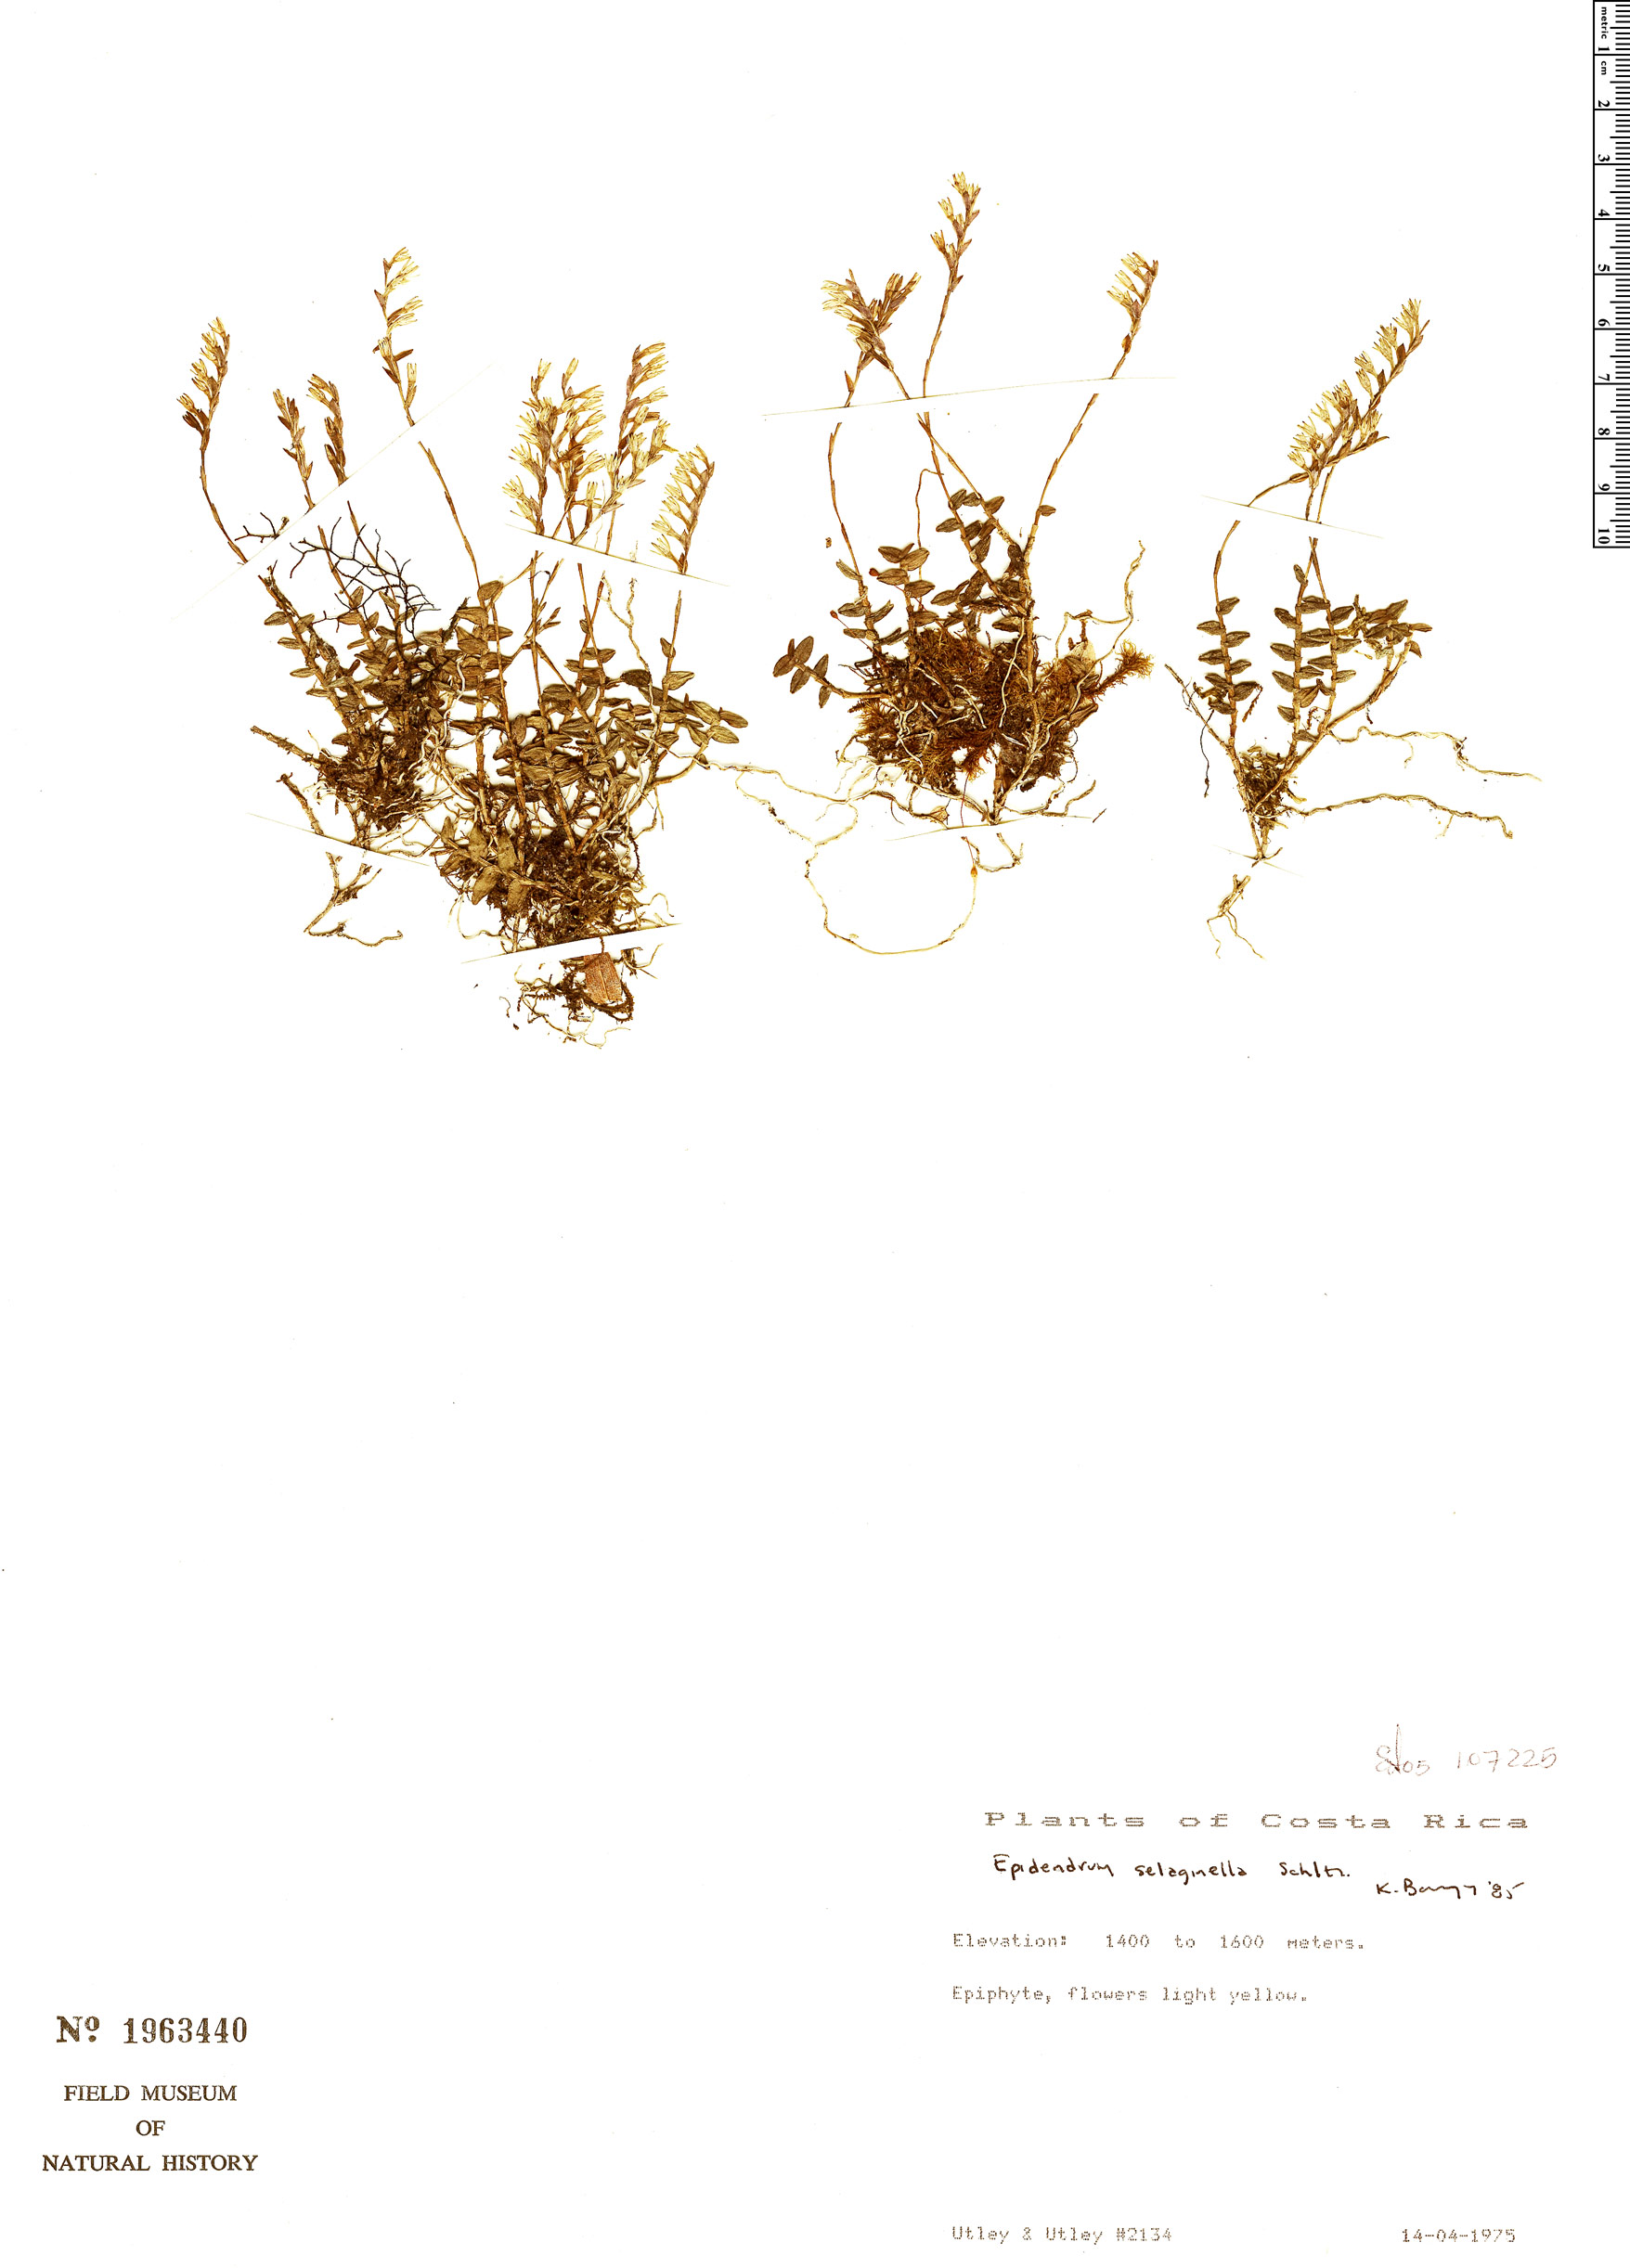 Specimen: Epidendrum selaginella